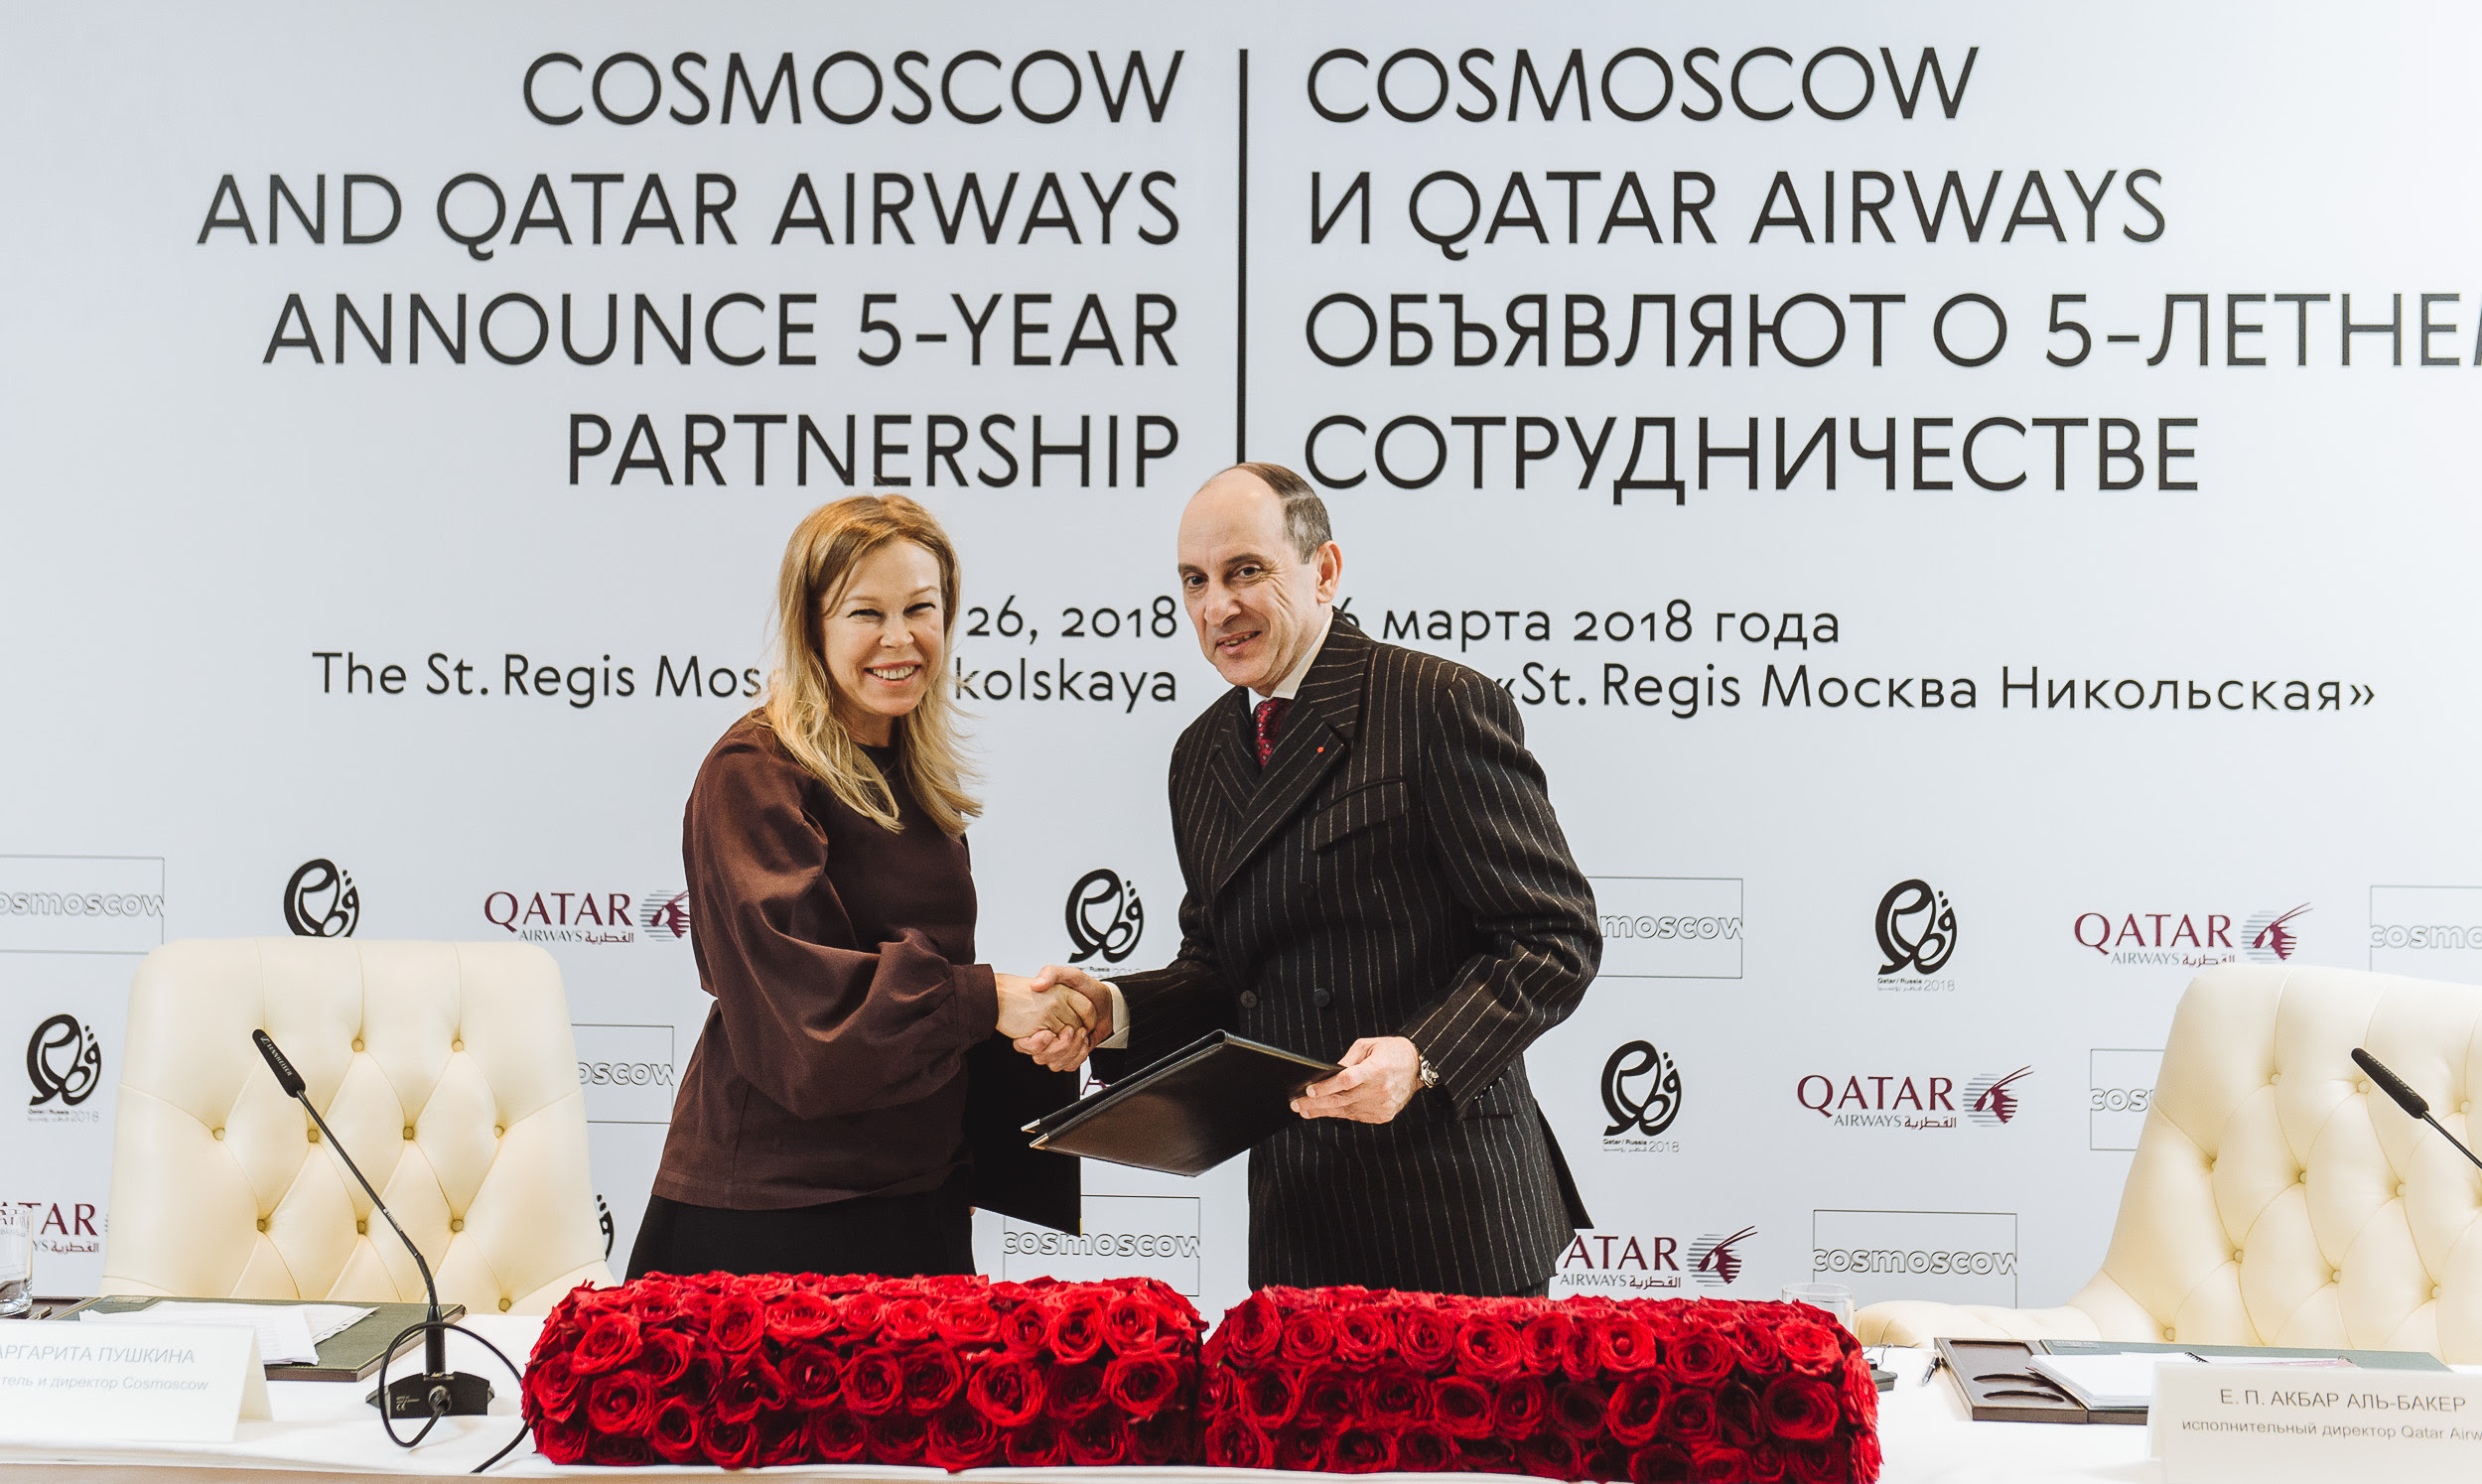 COSMOSCOW AND QATAR AIRWAYS ANNOUNCE 5-YEAR PARTNERSHIP